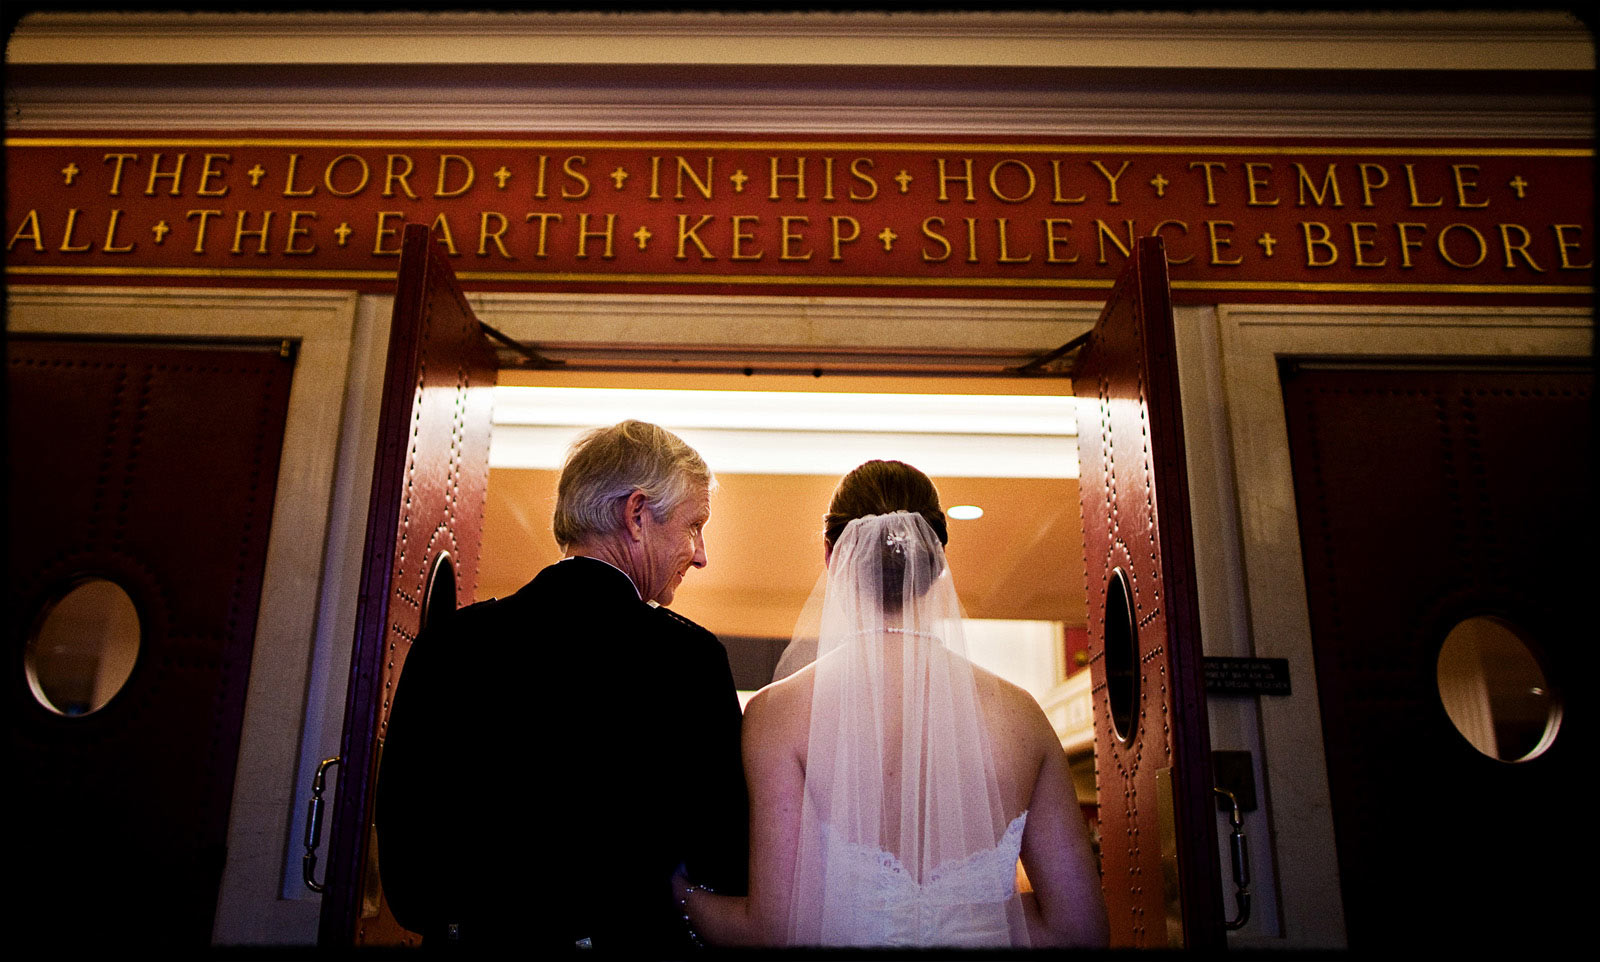 father and daughter walk into first congregational church during wedding ceremony